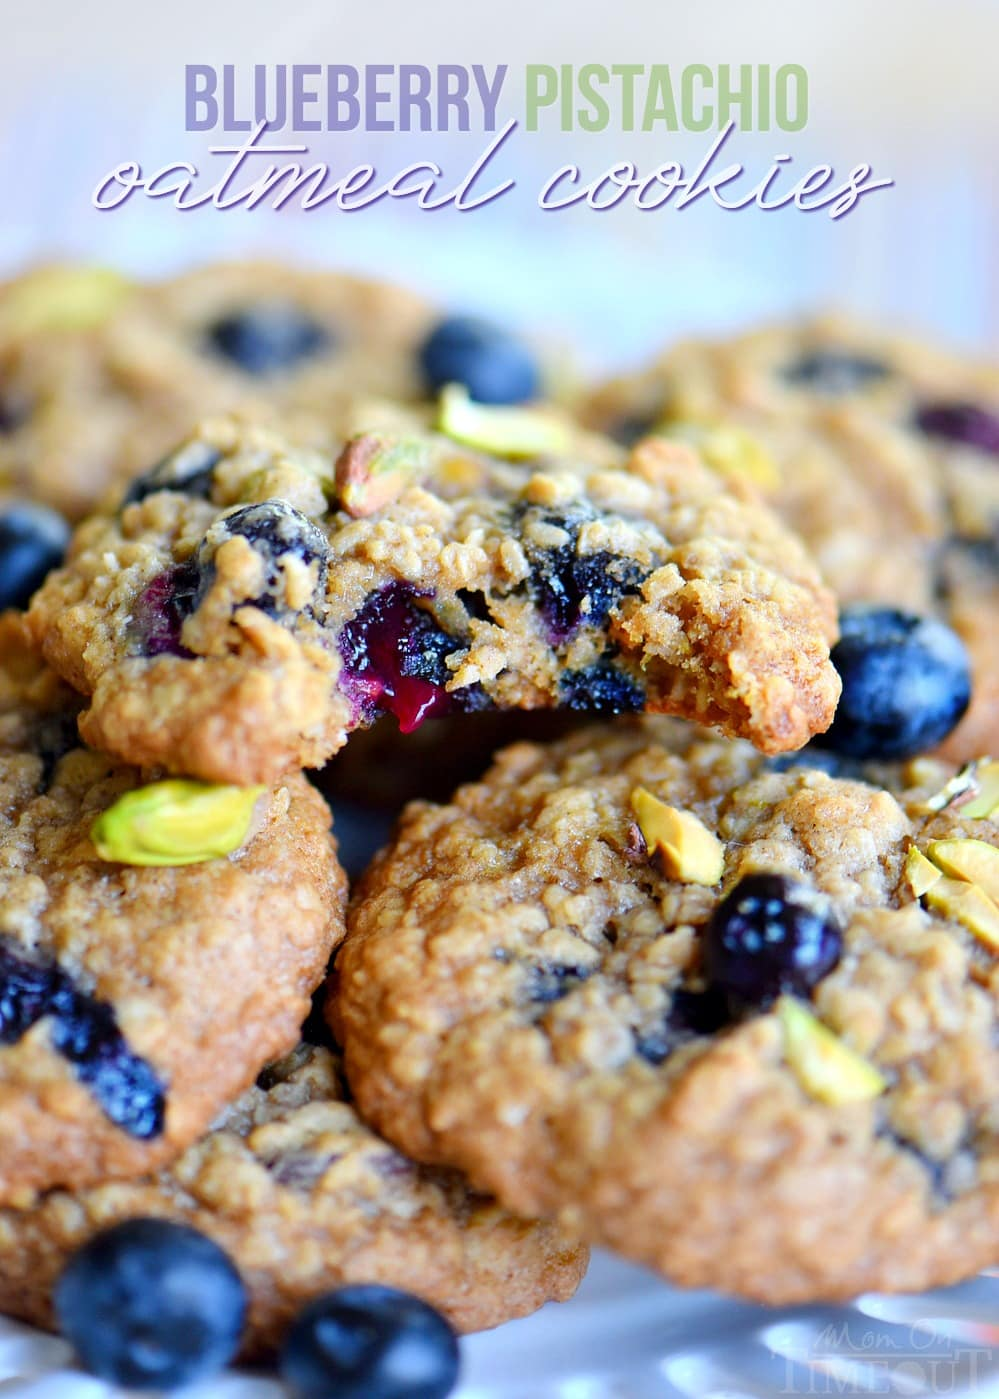 Blueberry Pistachio Oatmeal Cookies